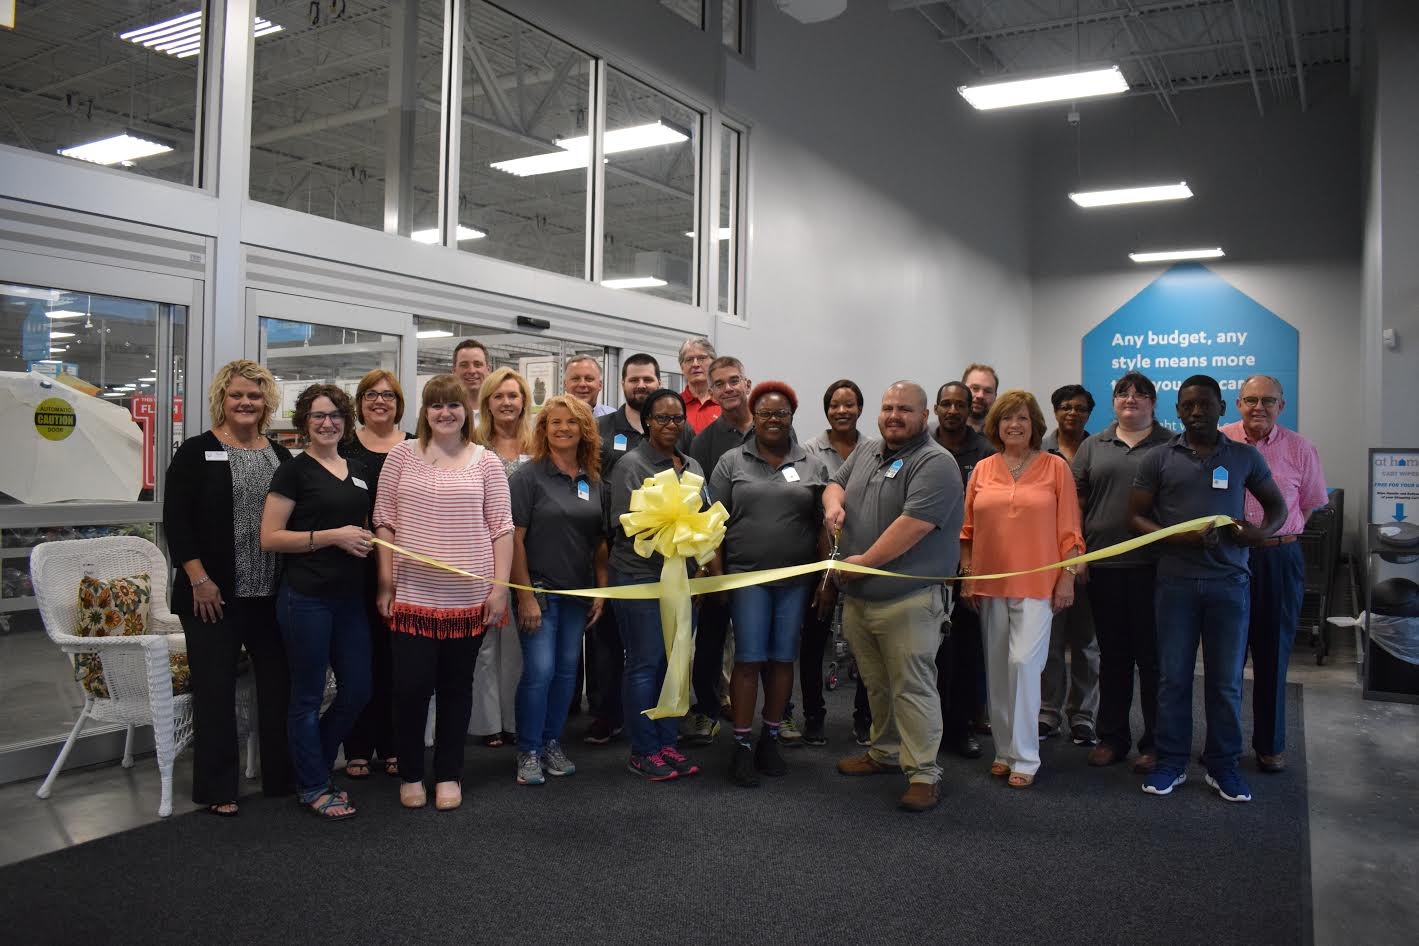 At Home officially opens with ribbon cutting